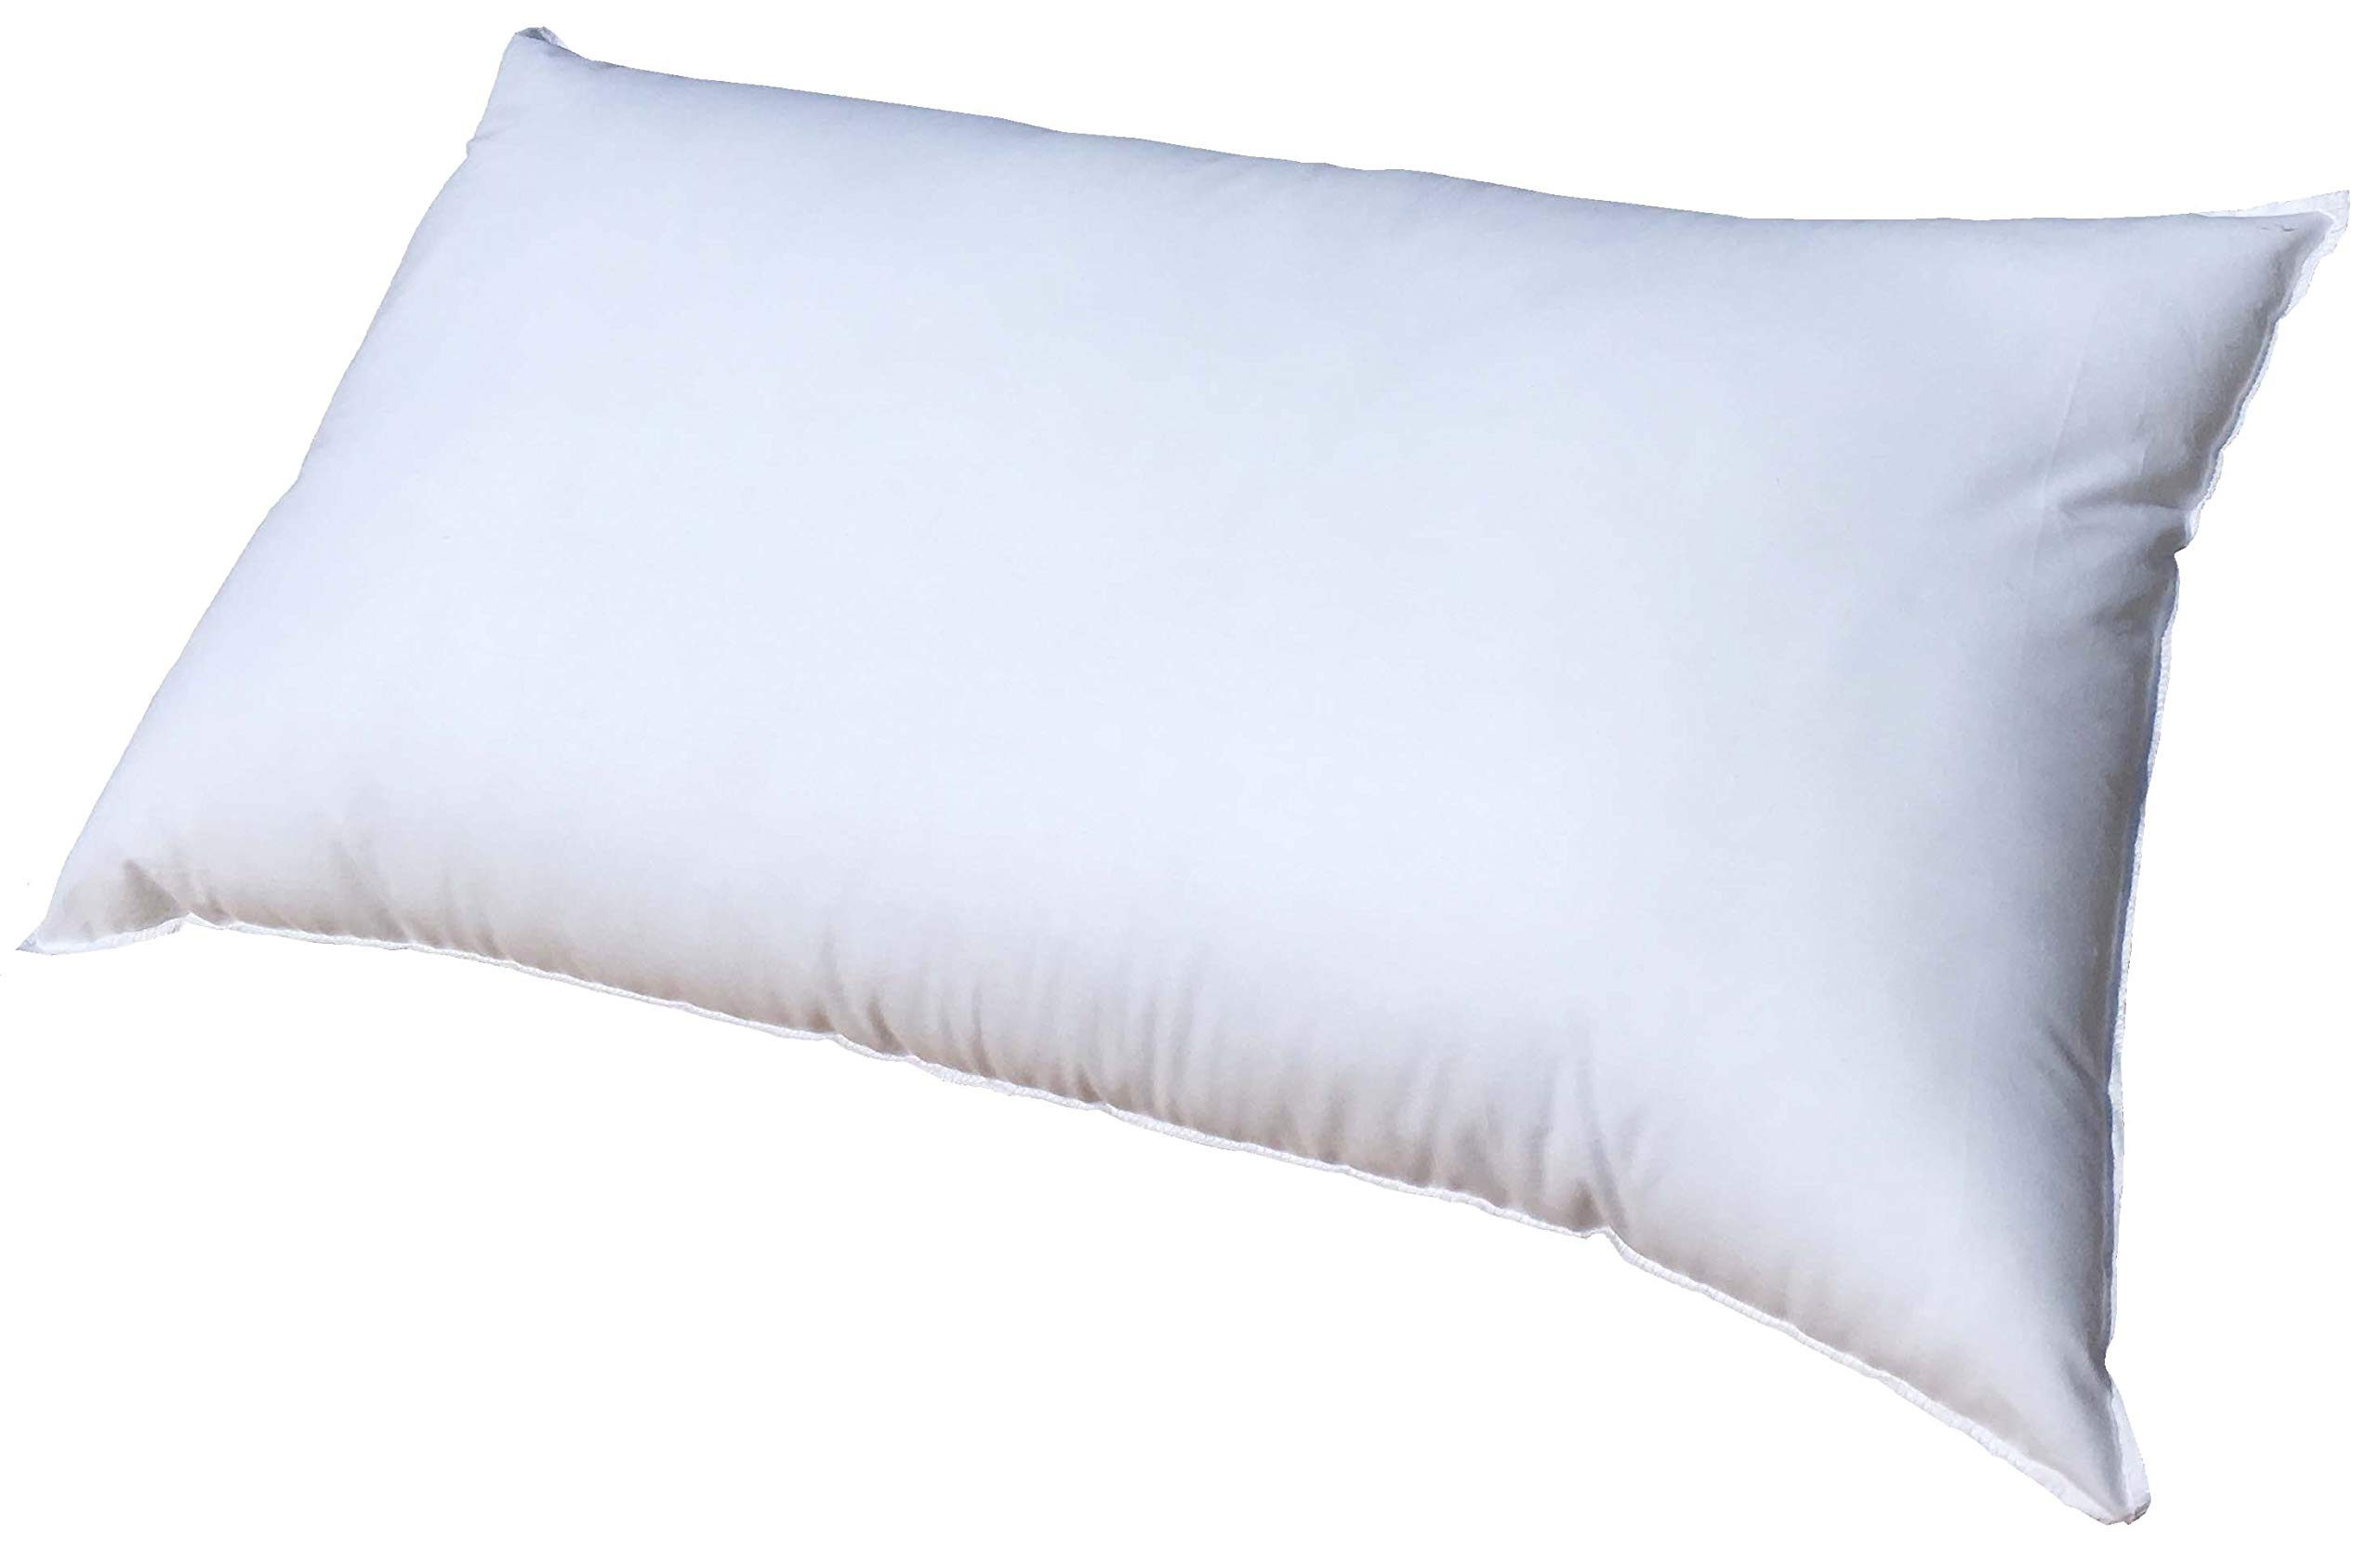 12x18 Inch Pillowflex Cluster Fiber Pillow Form Insert - Made in USA - Rectangle Oblong by Pillowflex